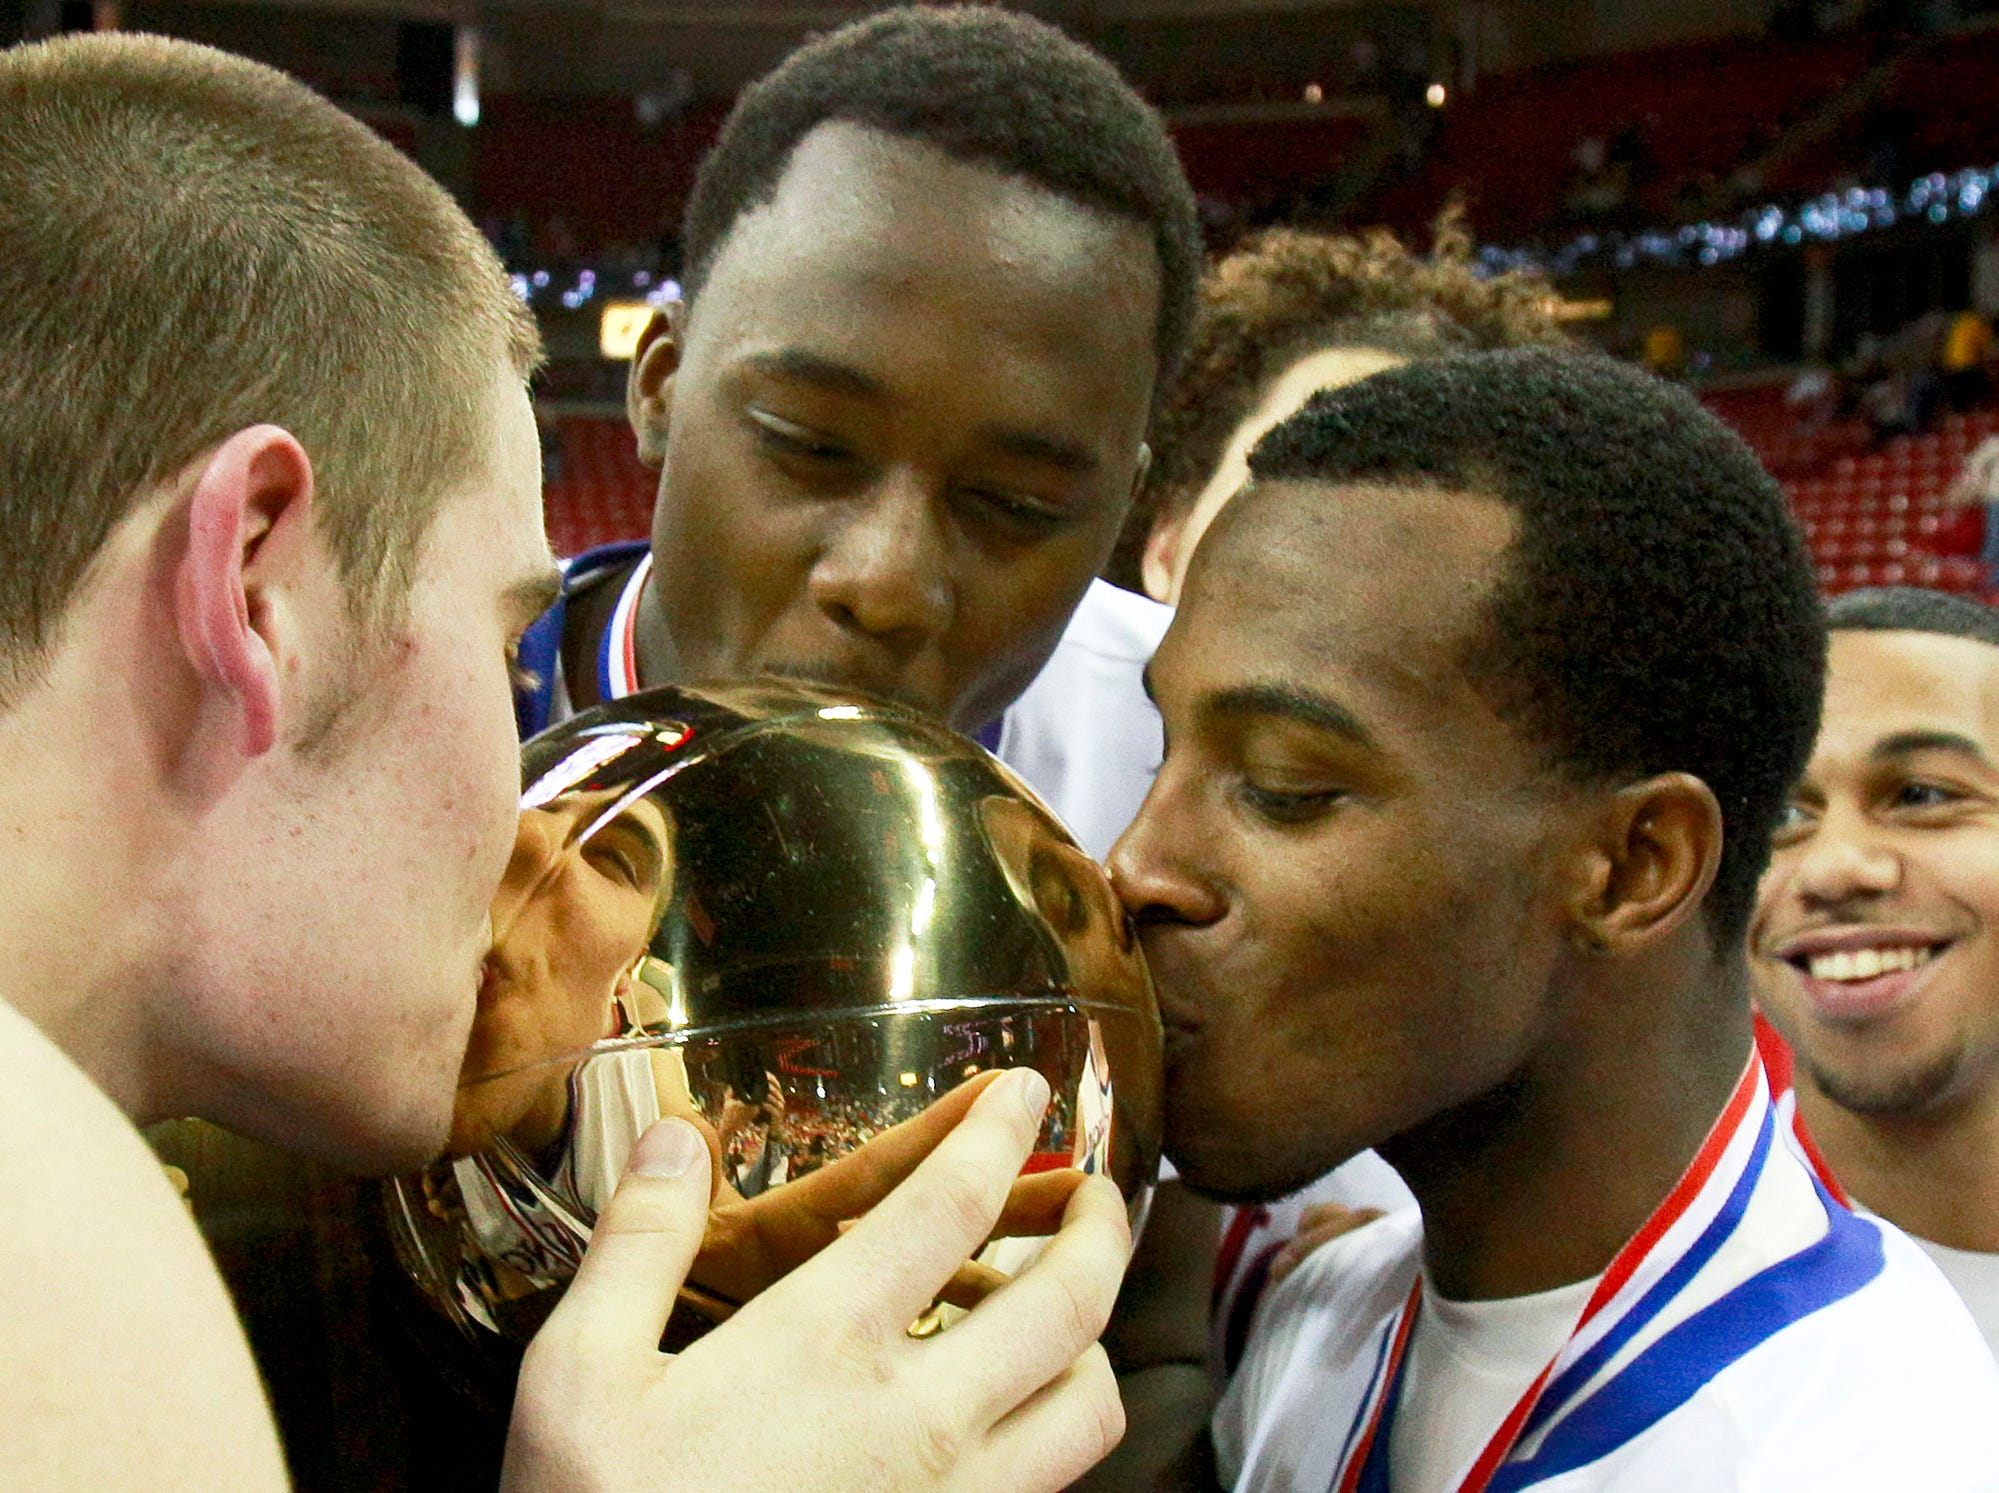 Wisconsin Lutheran's Andrew Rumler, left, Flavien Davis, center, and Cedquon Holmes all kiss the 2009 Division 2 championship trophy after beating Monroe 79-67 in a basketball game at the WIAA state tournament.